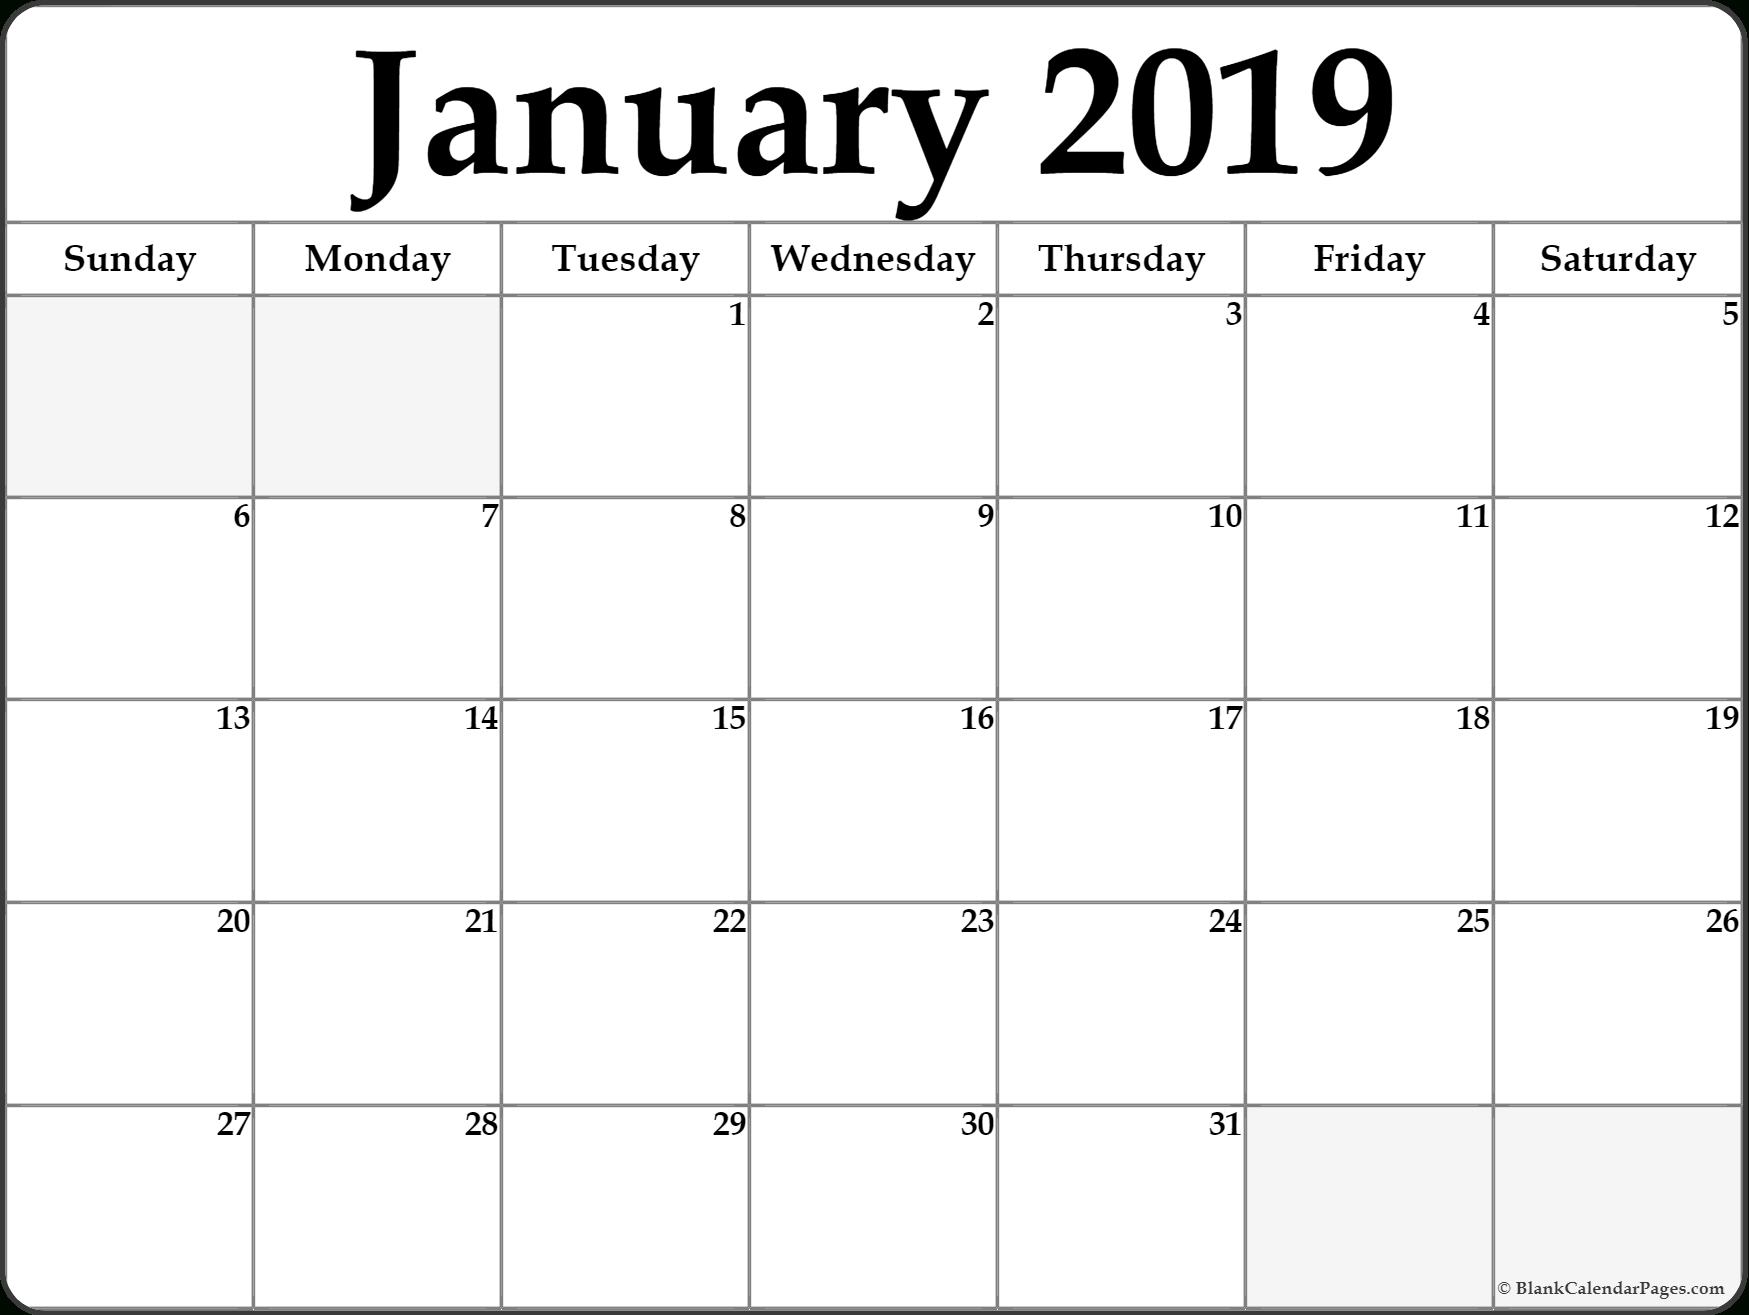 January 2019 Calendar Document Calendar 2019 Doc